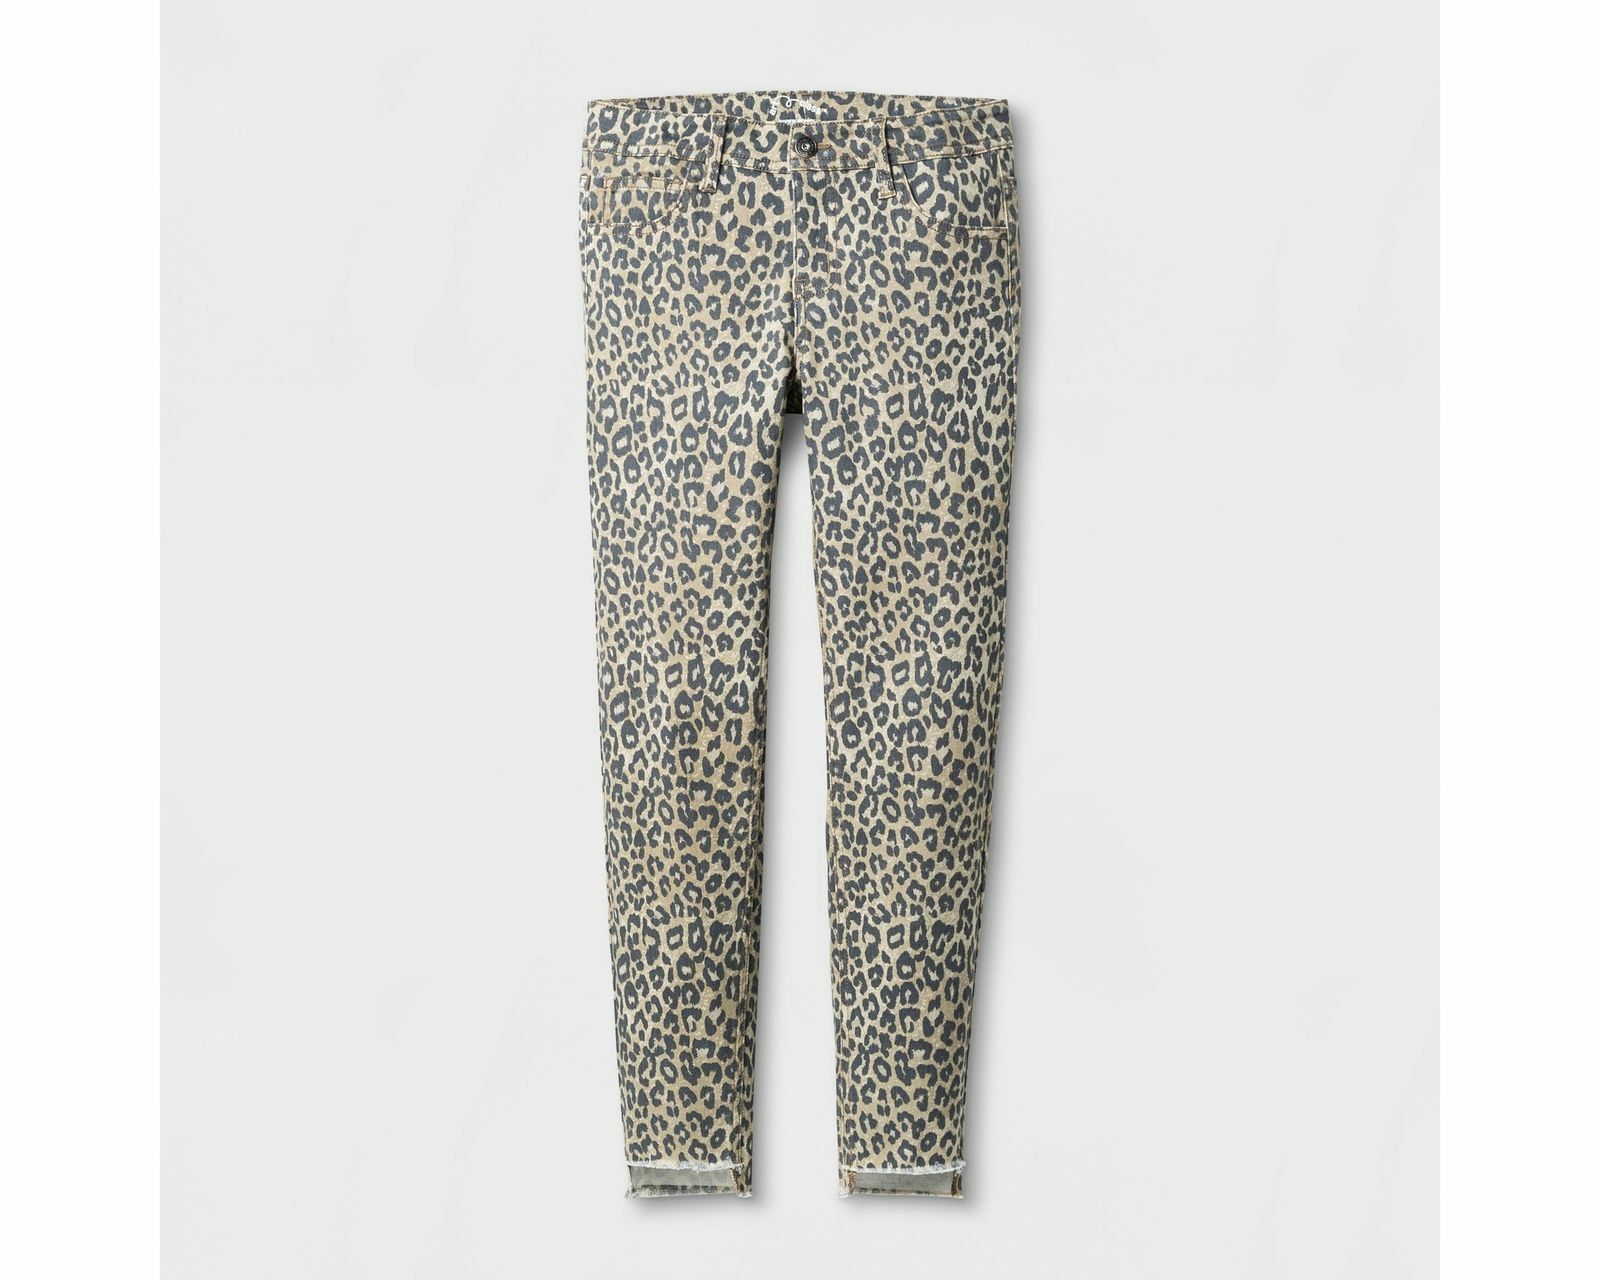 Girls' Leopard/Cheetah Print Super Skinny Jeans Pants by Art Class – Size 10 Clothing, Shoes & Accessories